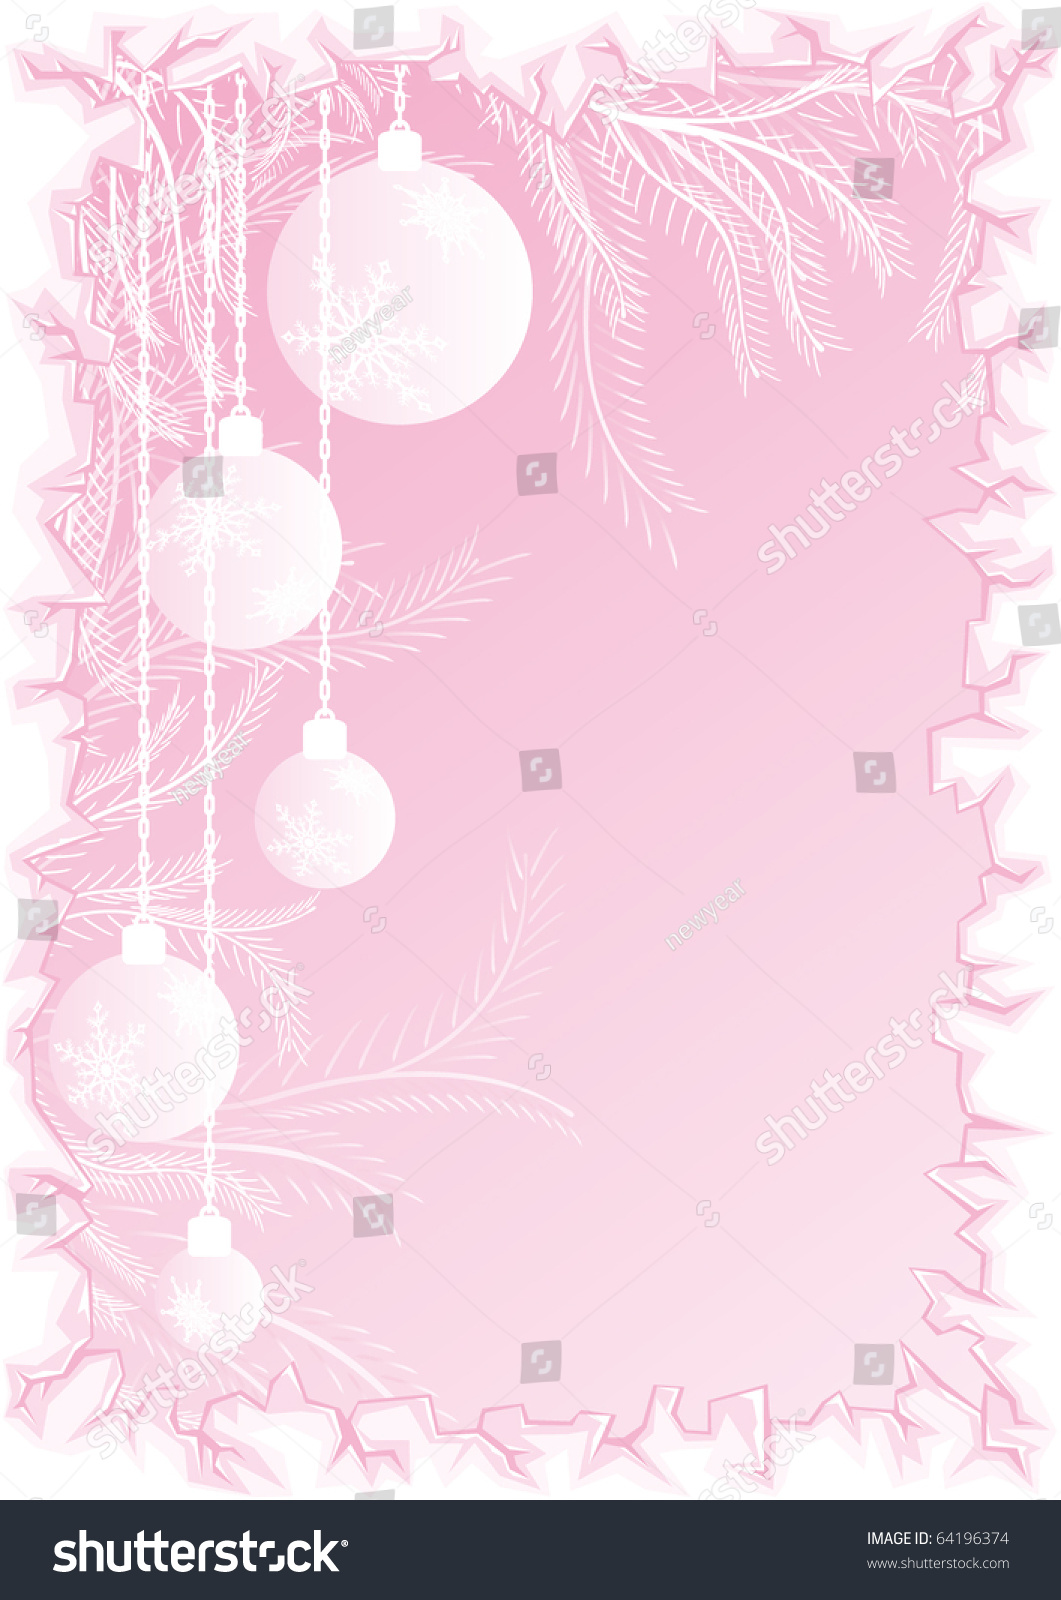 Free Snow Globe Clipart together with Stock Vector Pink Christmas Backdrop With Balls And Ice Border together with Christmas Snowflakes Background Stock Illustration as well Snowflake Transparent   Clip Art A C Fa C F also Christmas Frame Stock Illustration. on snowflake border clip art